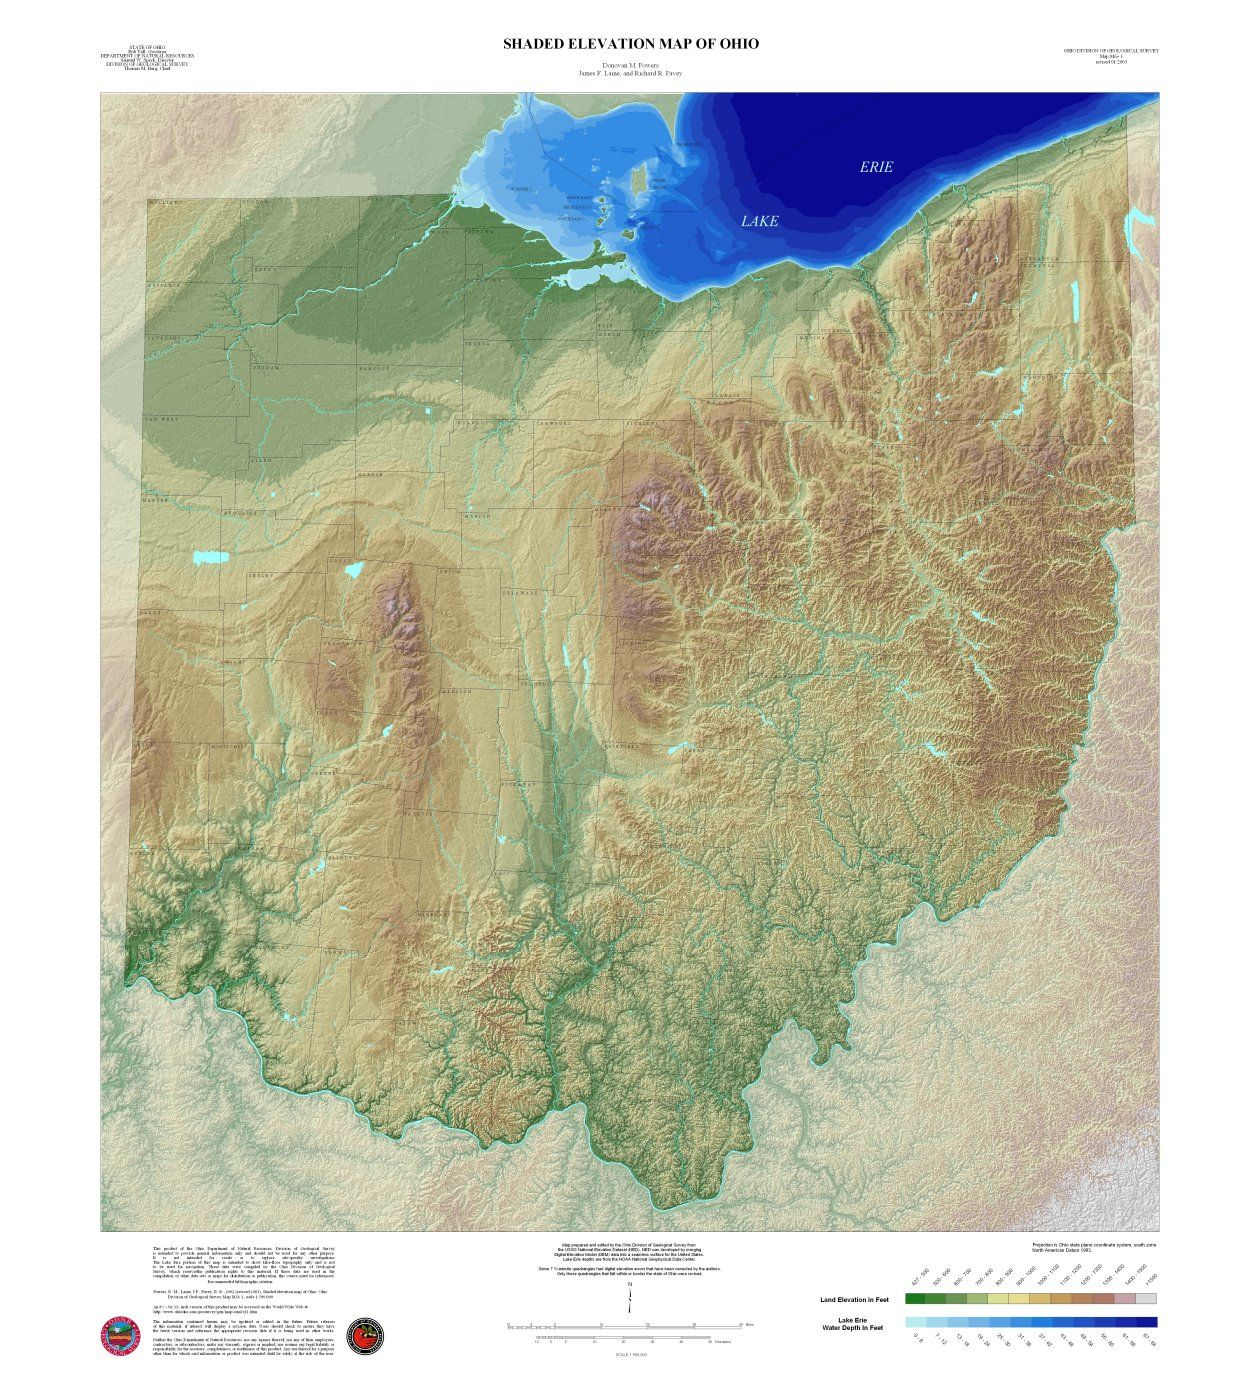 Topography Map Of Ohio.High Contrast Elevation Map Of Ohio Geography Pinterest Ohio